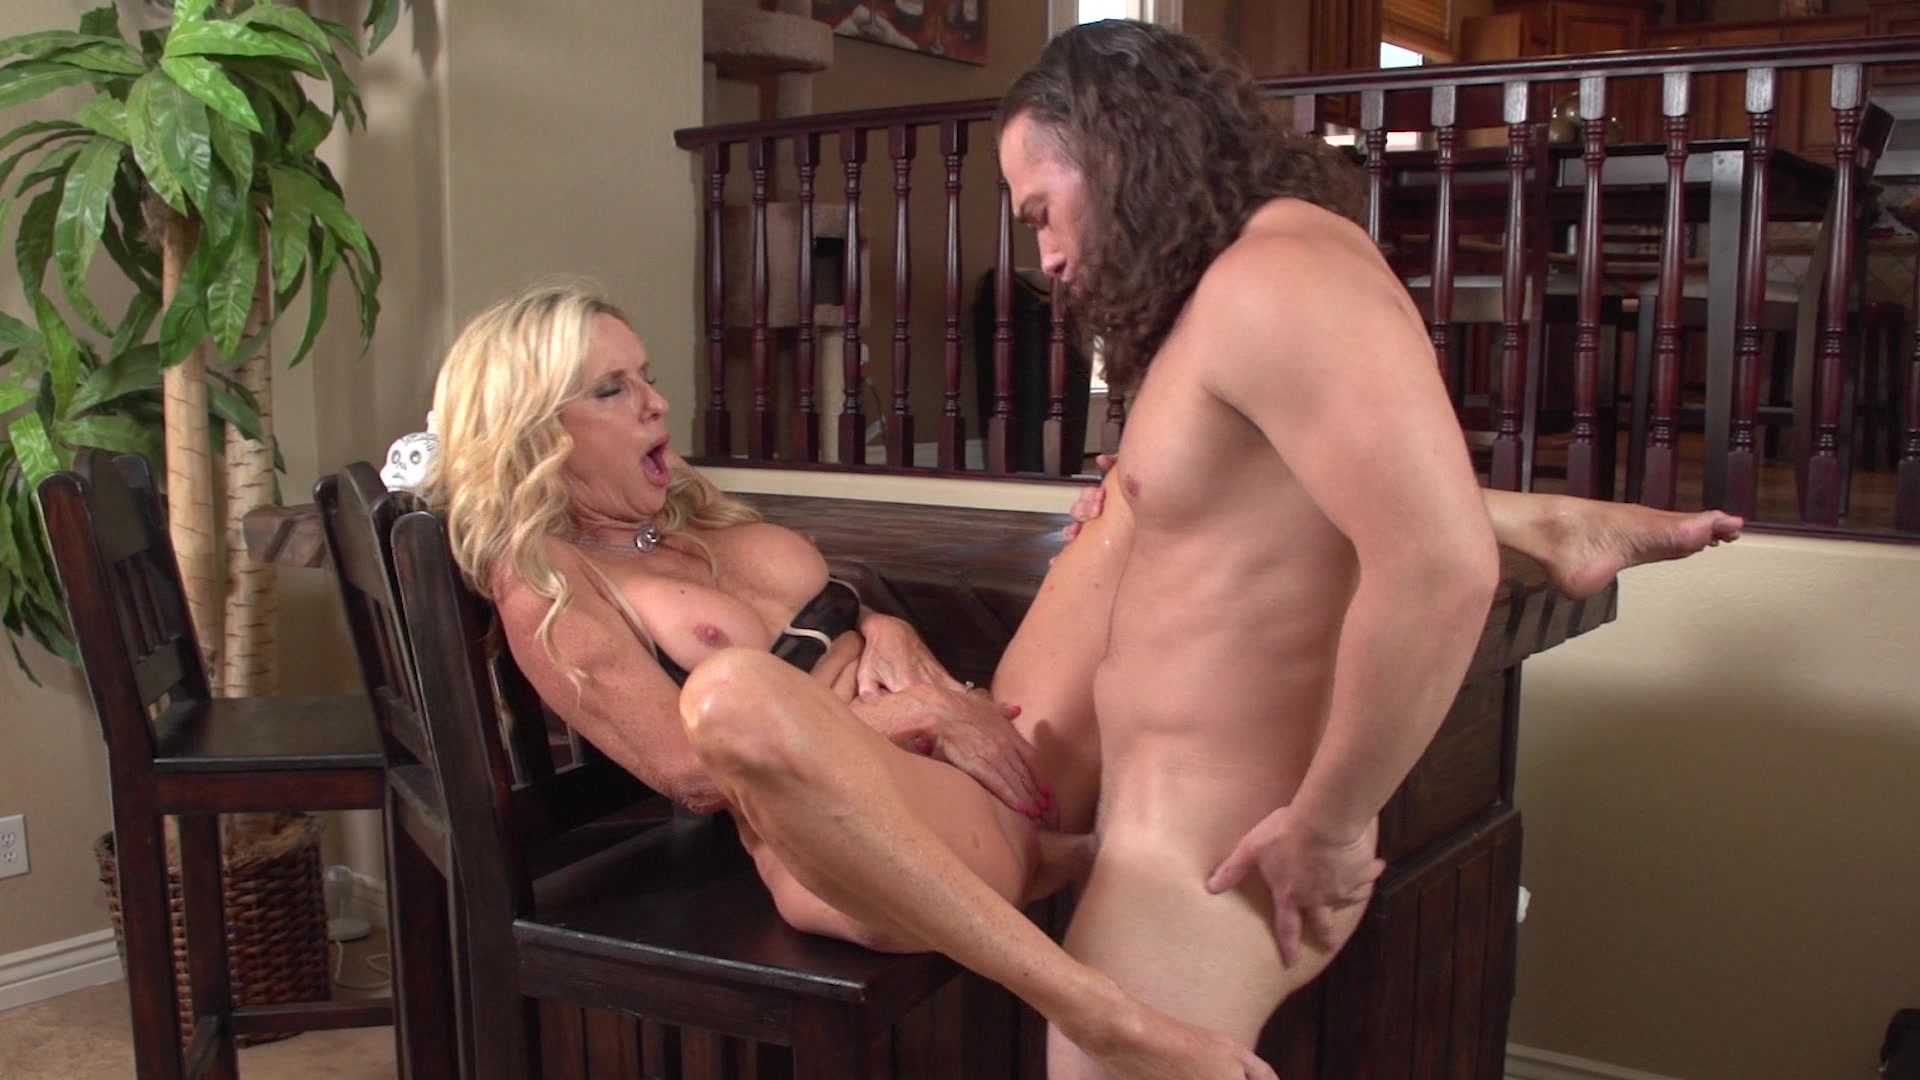 Son fucks not his mom while his father not at home - 3 part 5